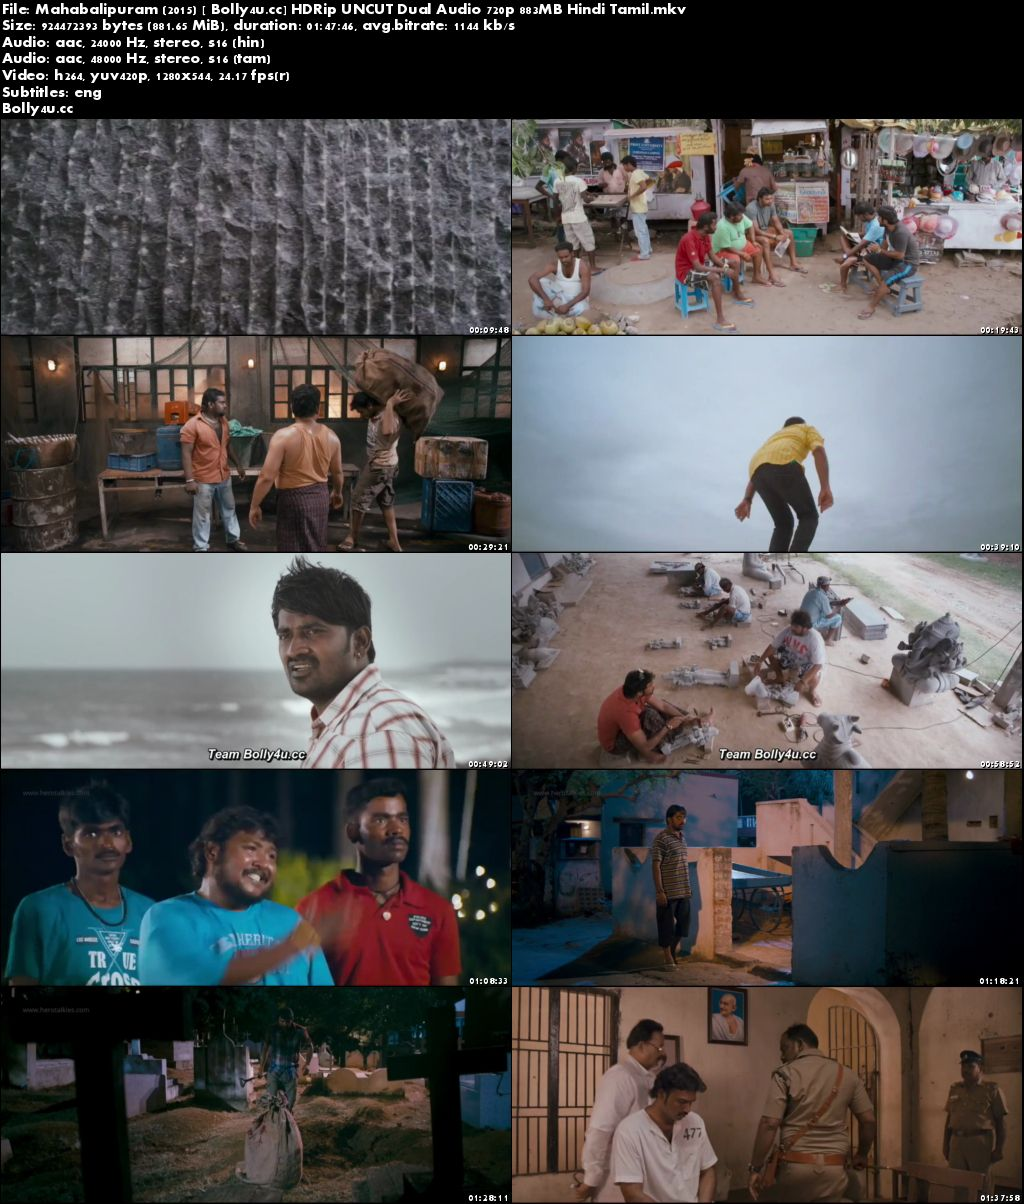 Mahabalipuram 2015 HDRip 850MB UNCUT Hindi Dual Audio 720p ESub Download